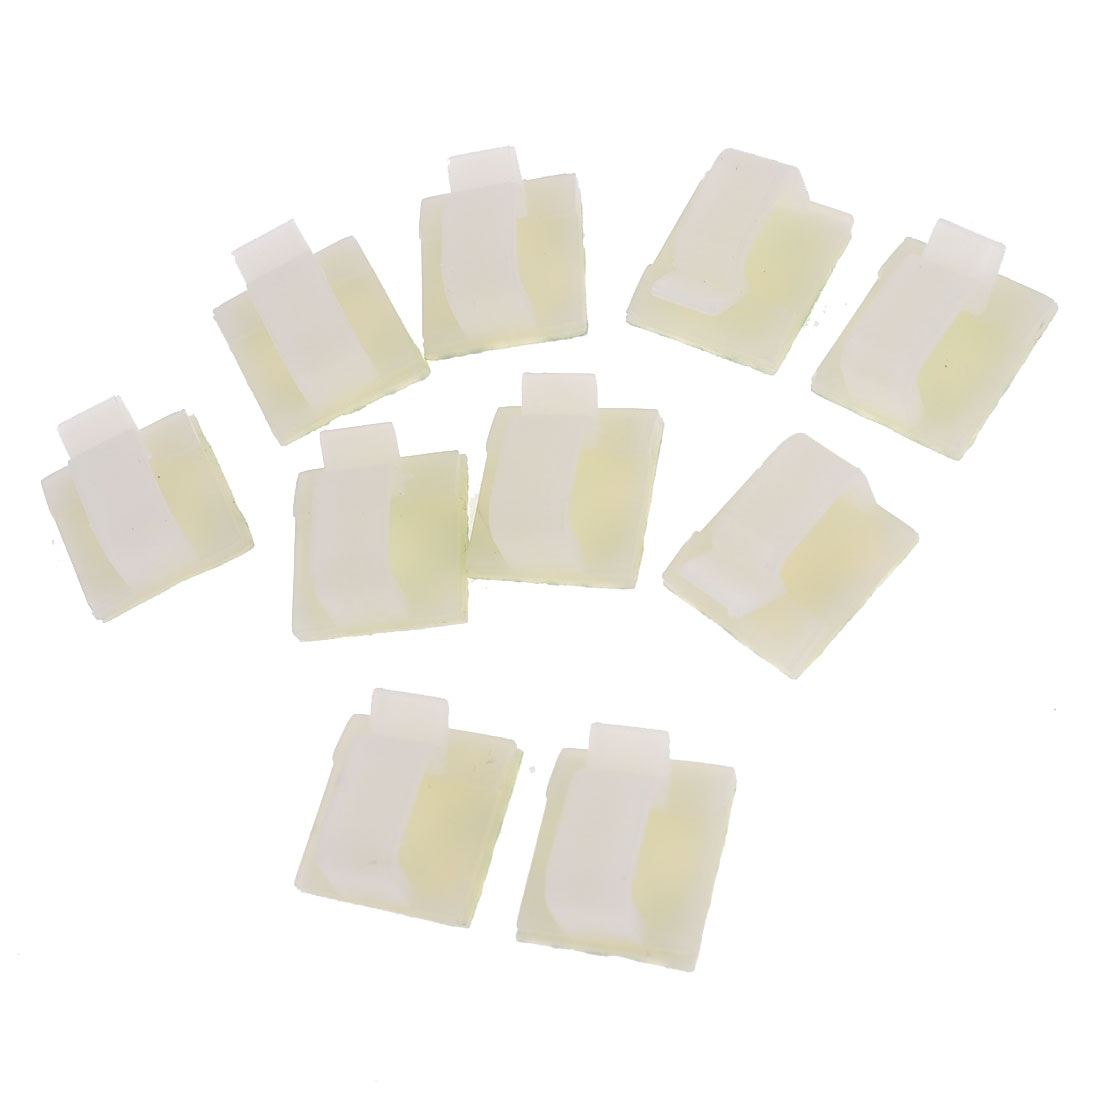 10 Pcs Rectangle Self-adhesive 10mm Cable Tie Mount Clips White